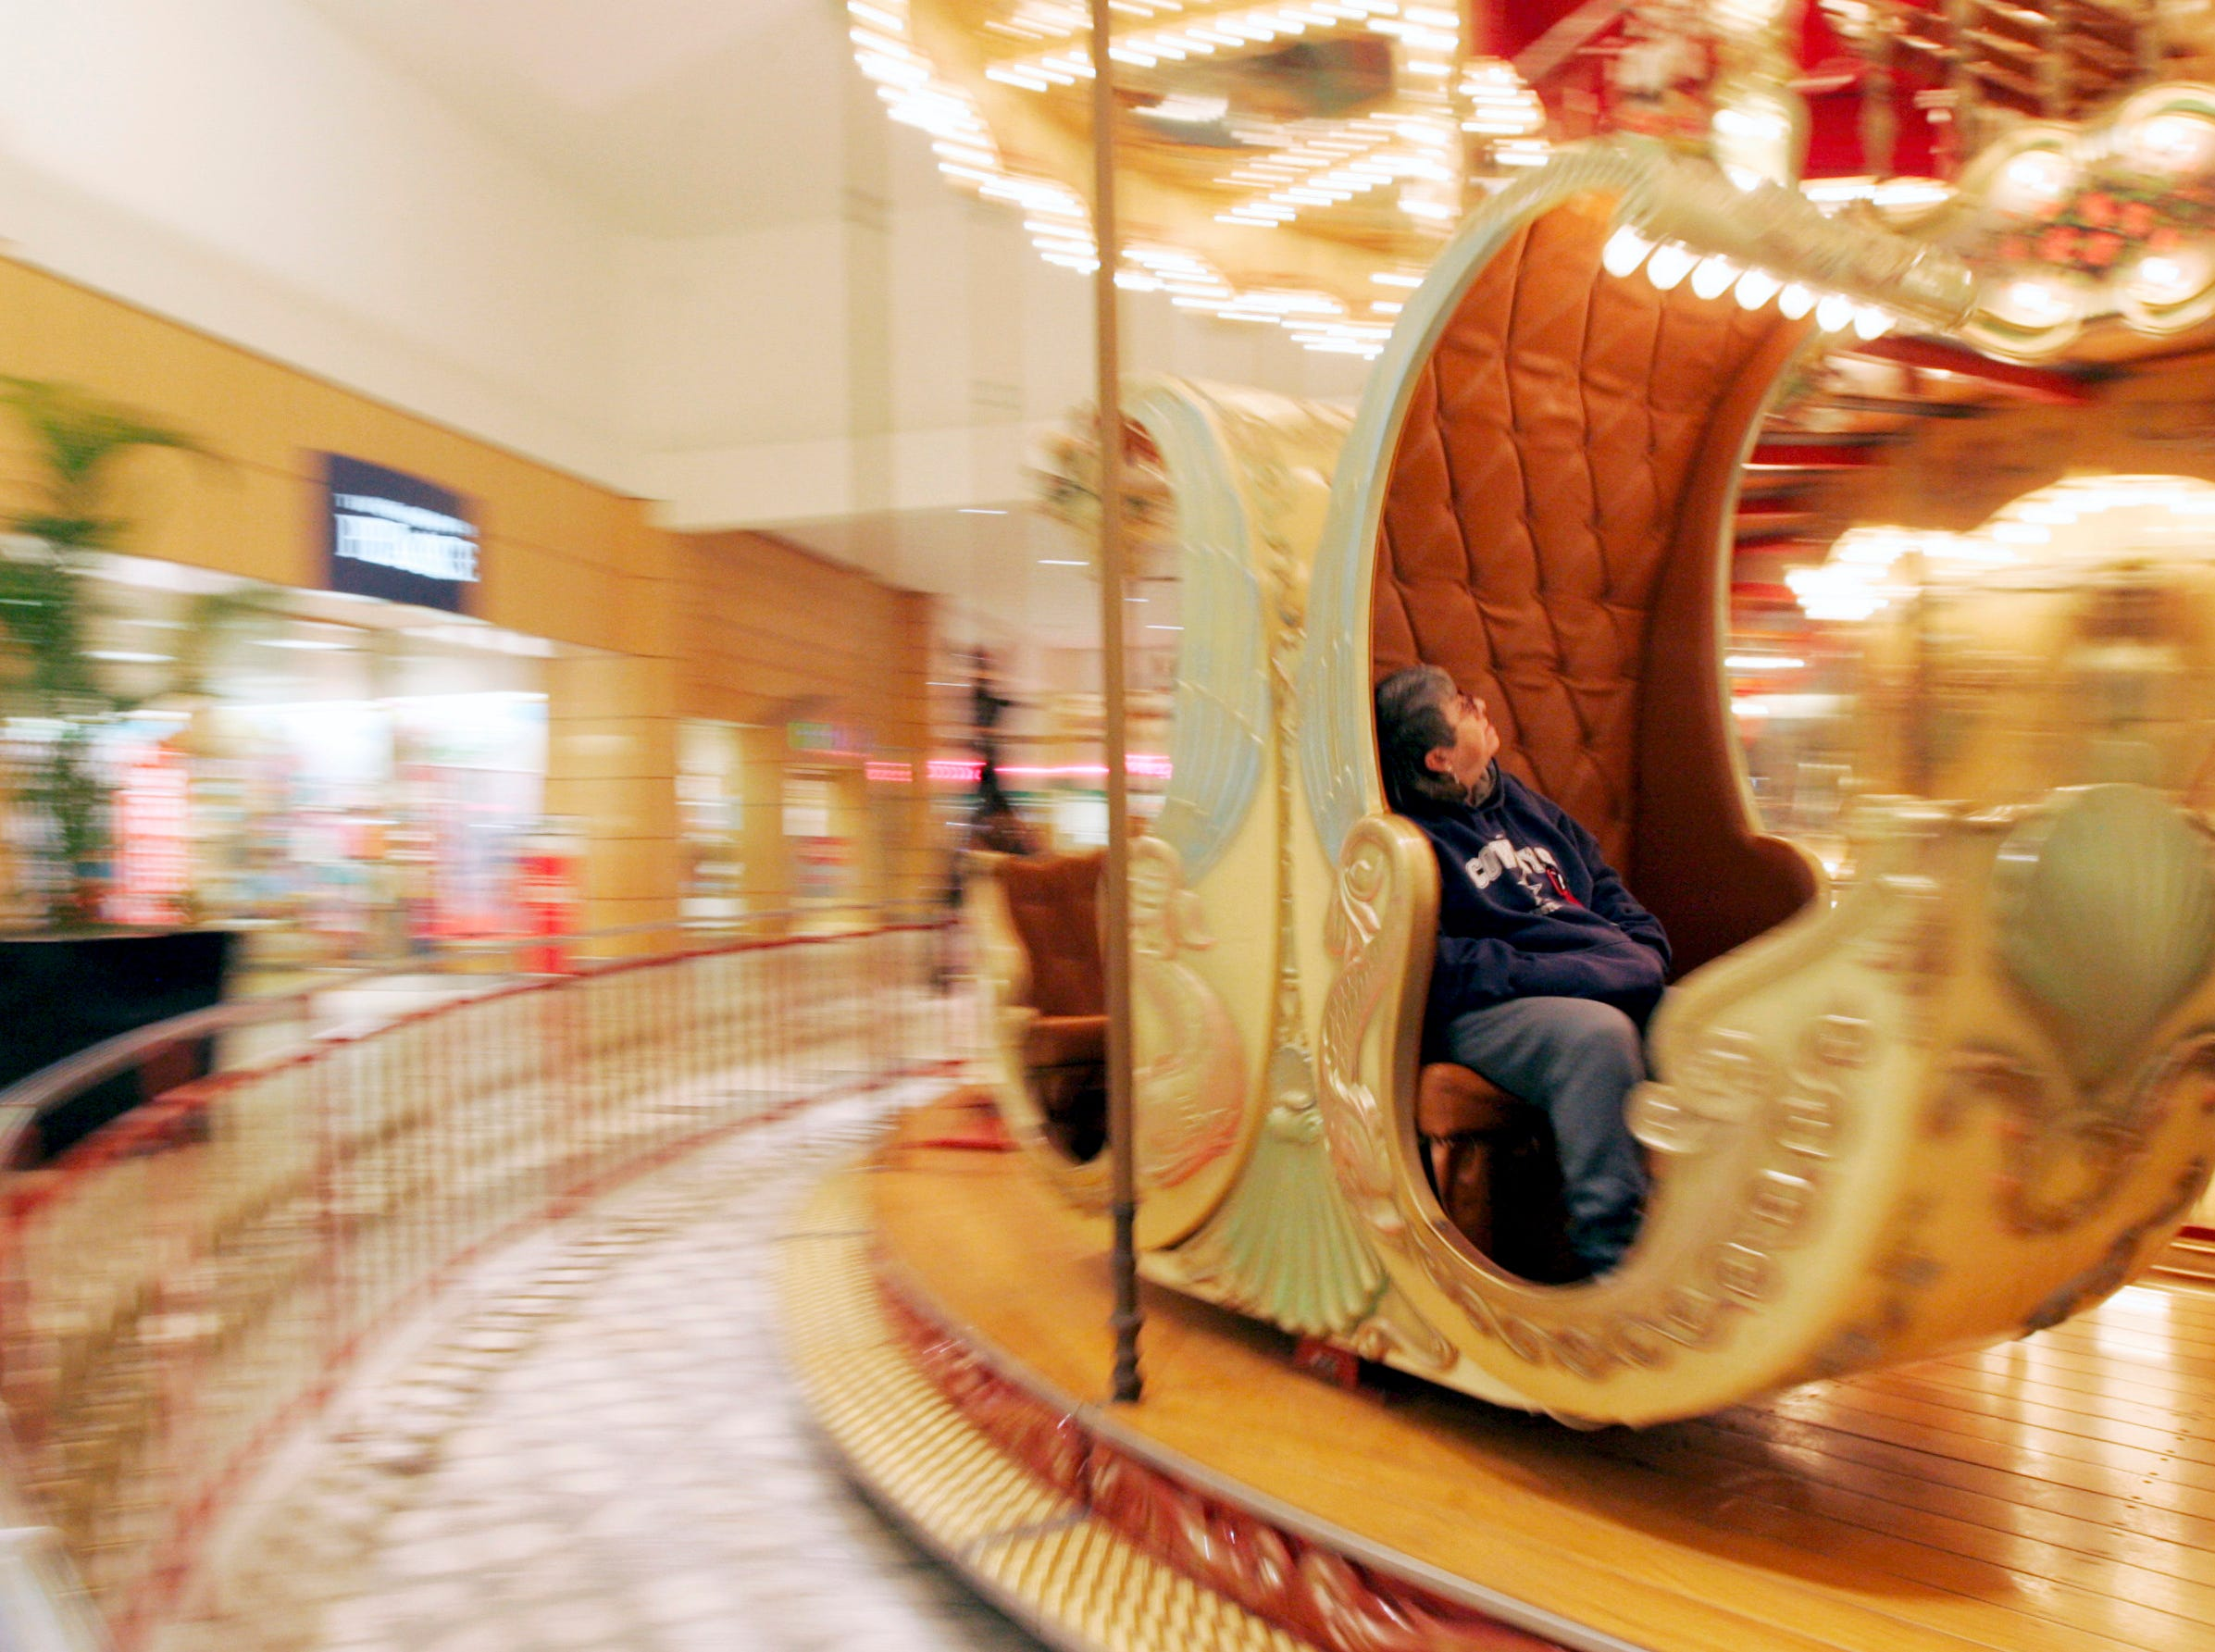 Ginger Bryant checks out the inside of her gondola seat Wednesday, Jan 14, 2009, as she rides the carousel at La Palmera mall in Corpus Christi.